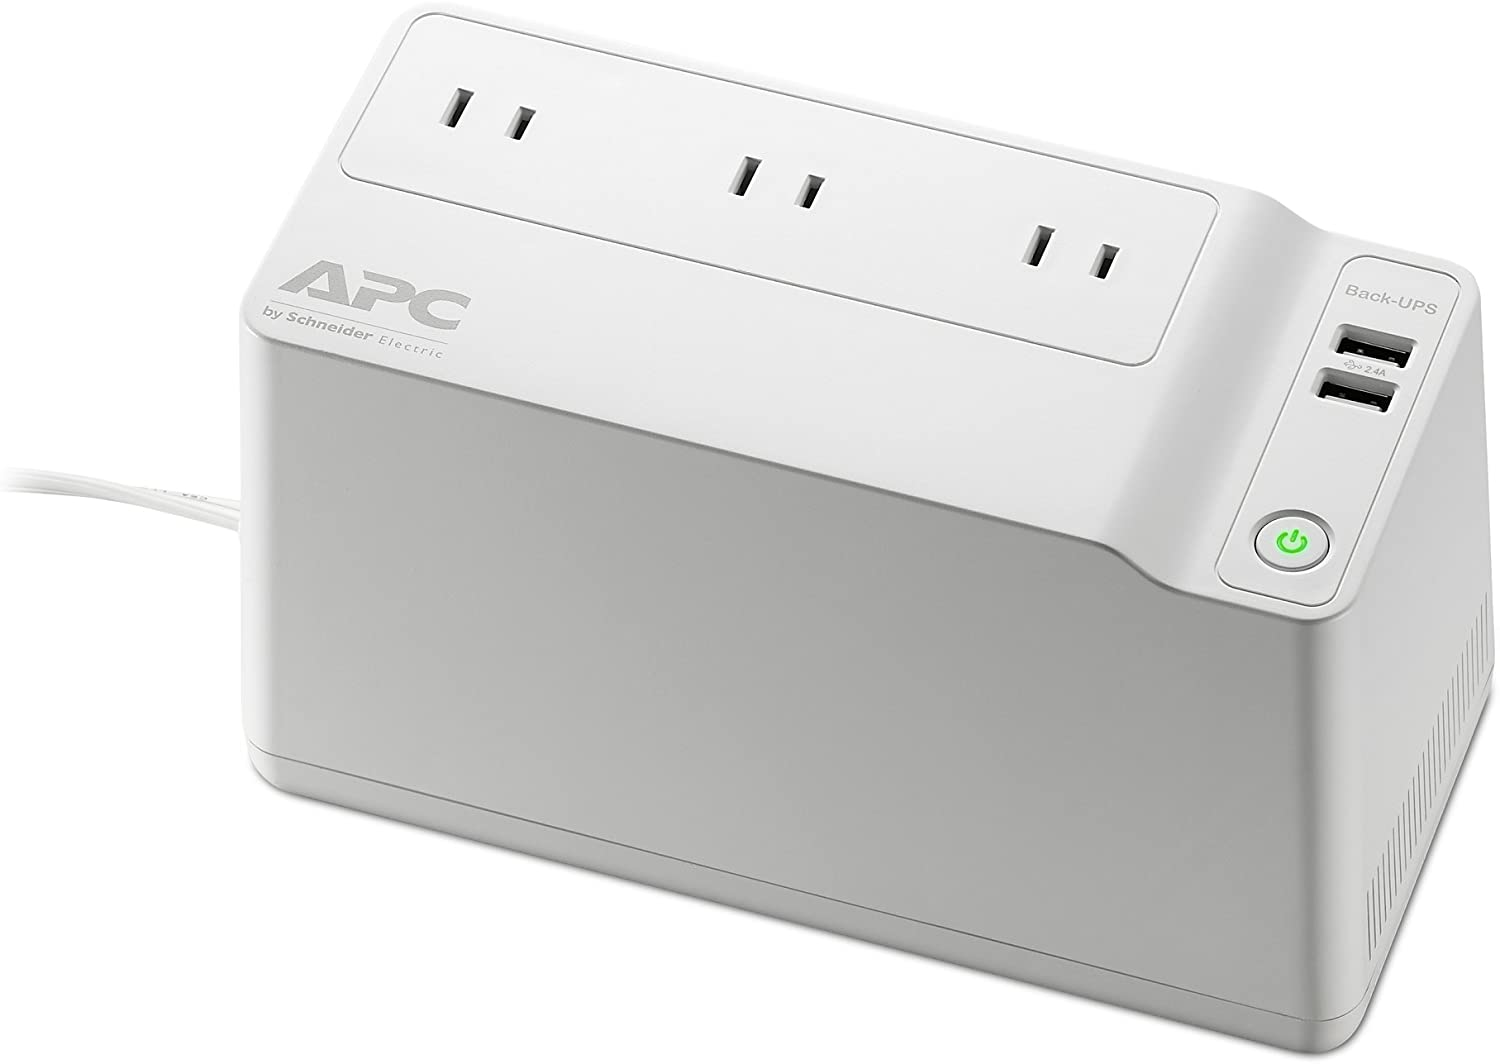 APC Back-UPS Connect BGE90M,120V, Network Backup with USB Charging ports